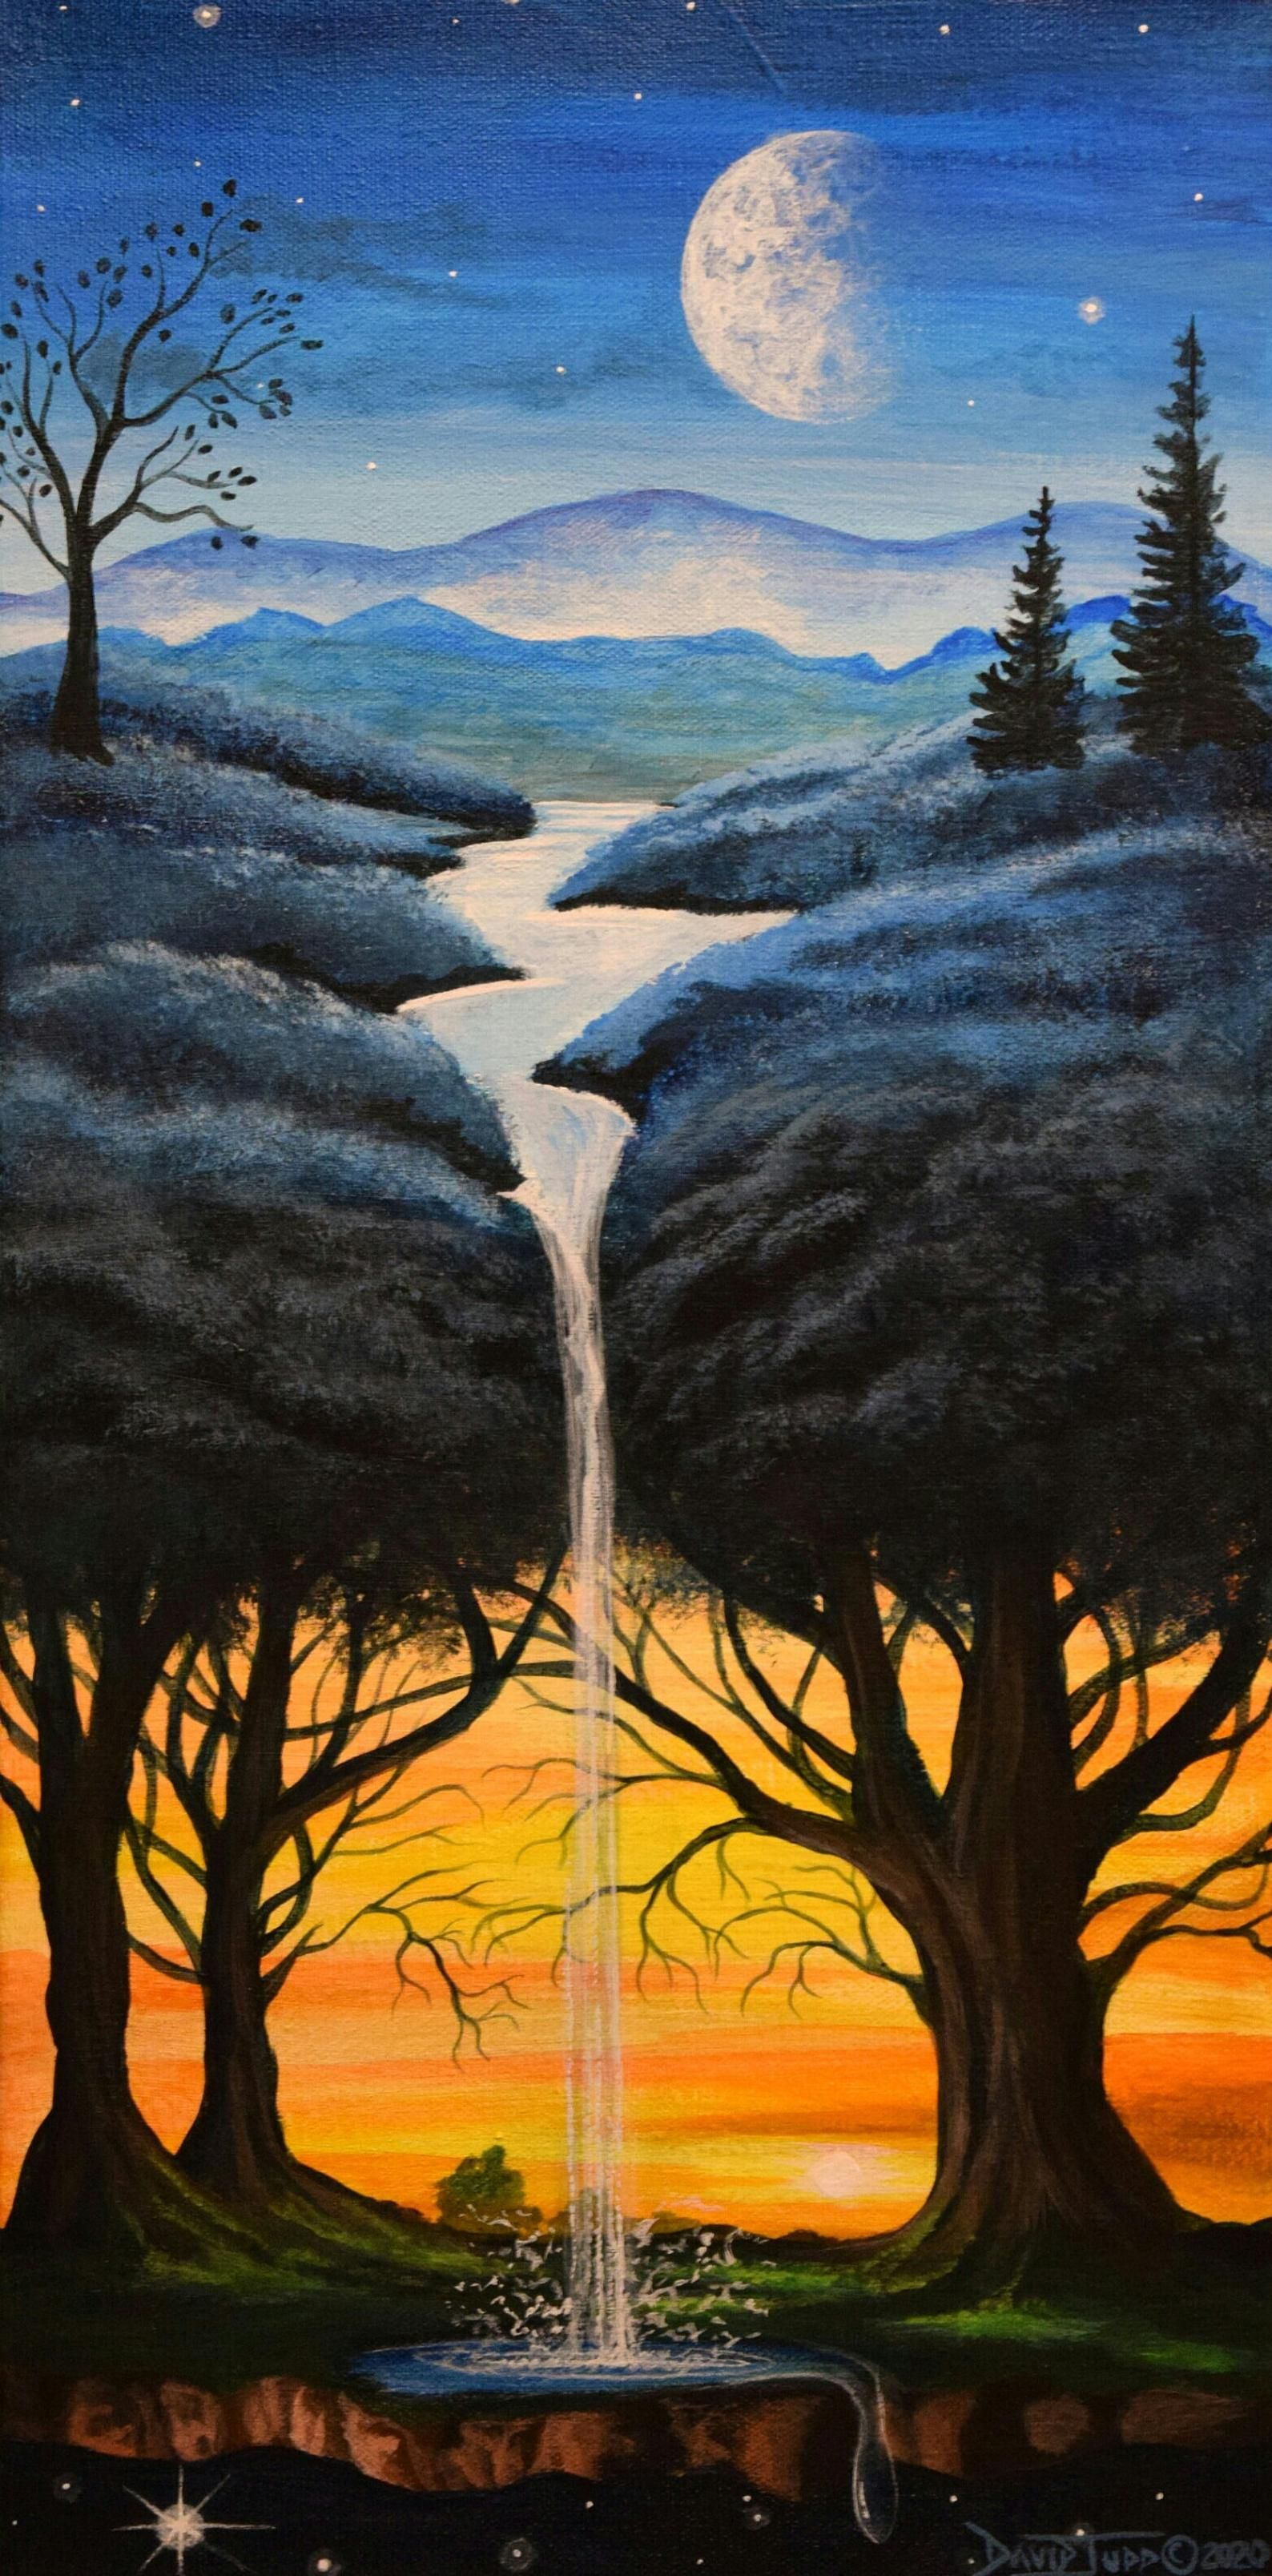 Original Surreal Painted Canvas Wall Hanging With Blue Tree And Orange Sunset 10x20 Surrealist Art Fantasy Art Canvas By David Judd Surreal Art Painting Surrealism Painting Nature Art Painting